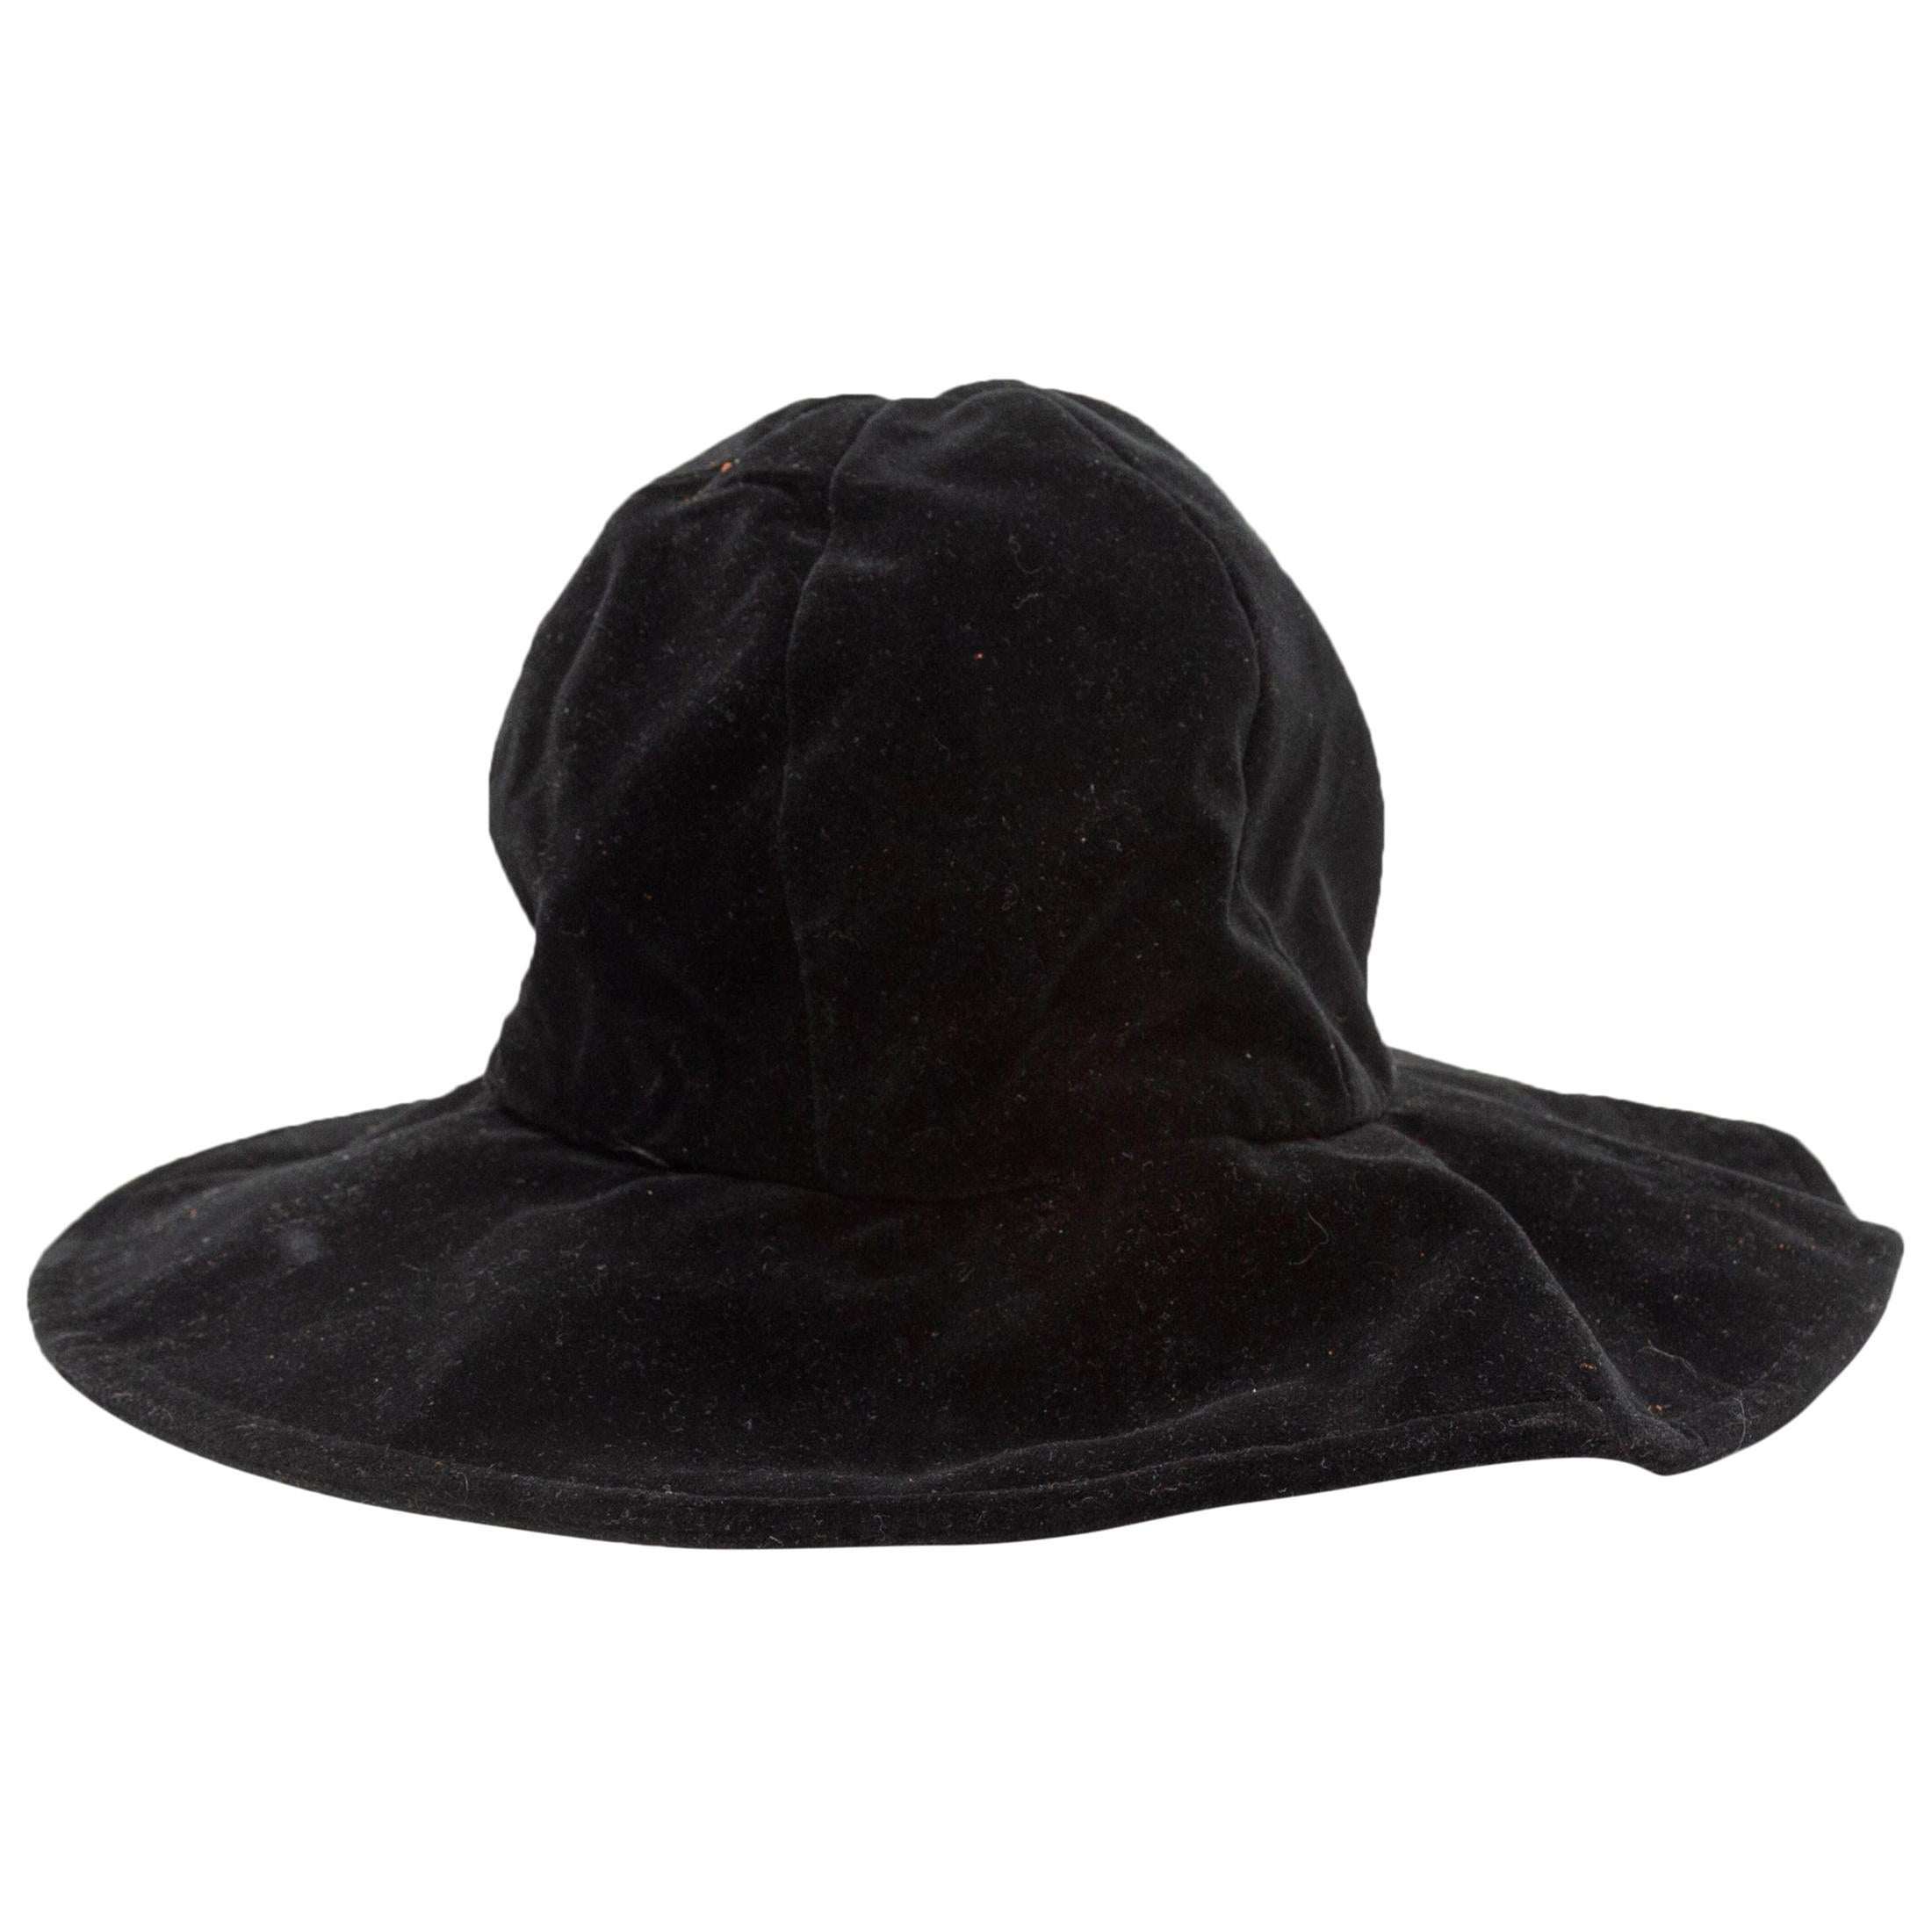 Patricia Underwood Black Too Velvet Bucket Hat